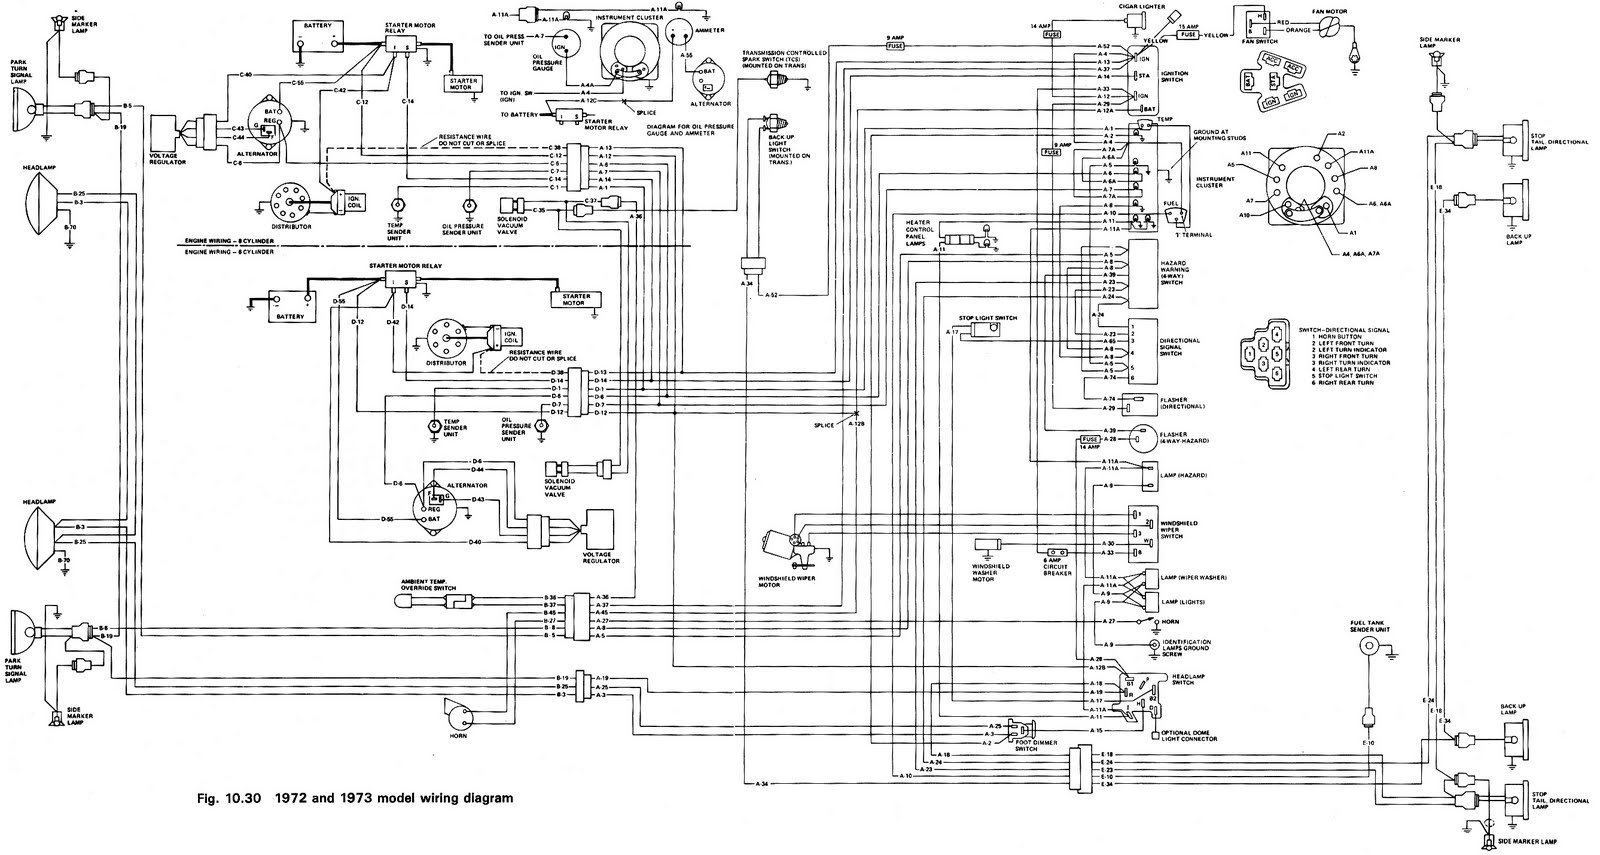 1980 jeep cj7 ga gauge wiring diagram